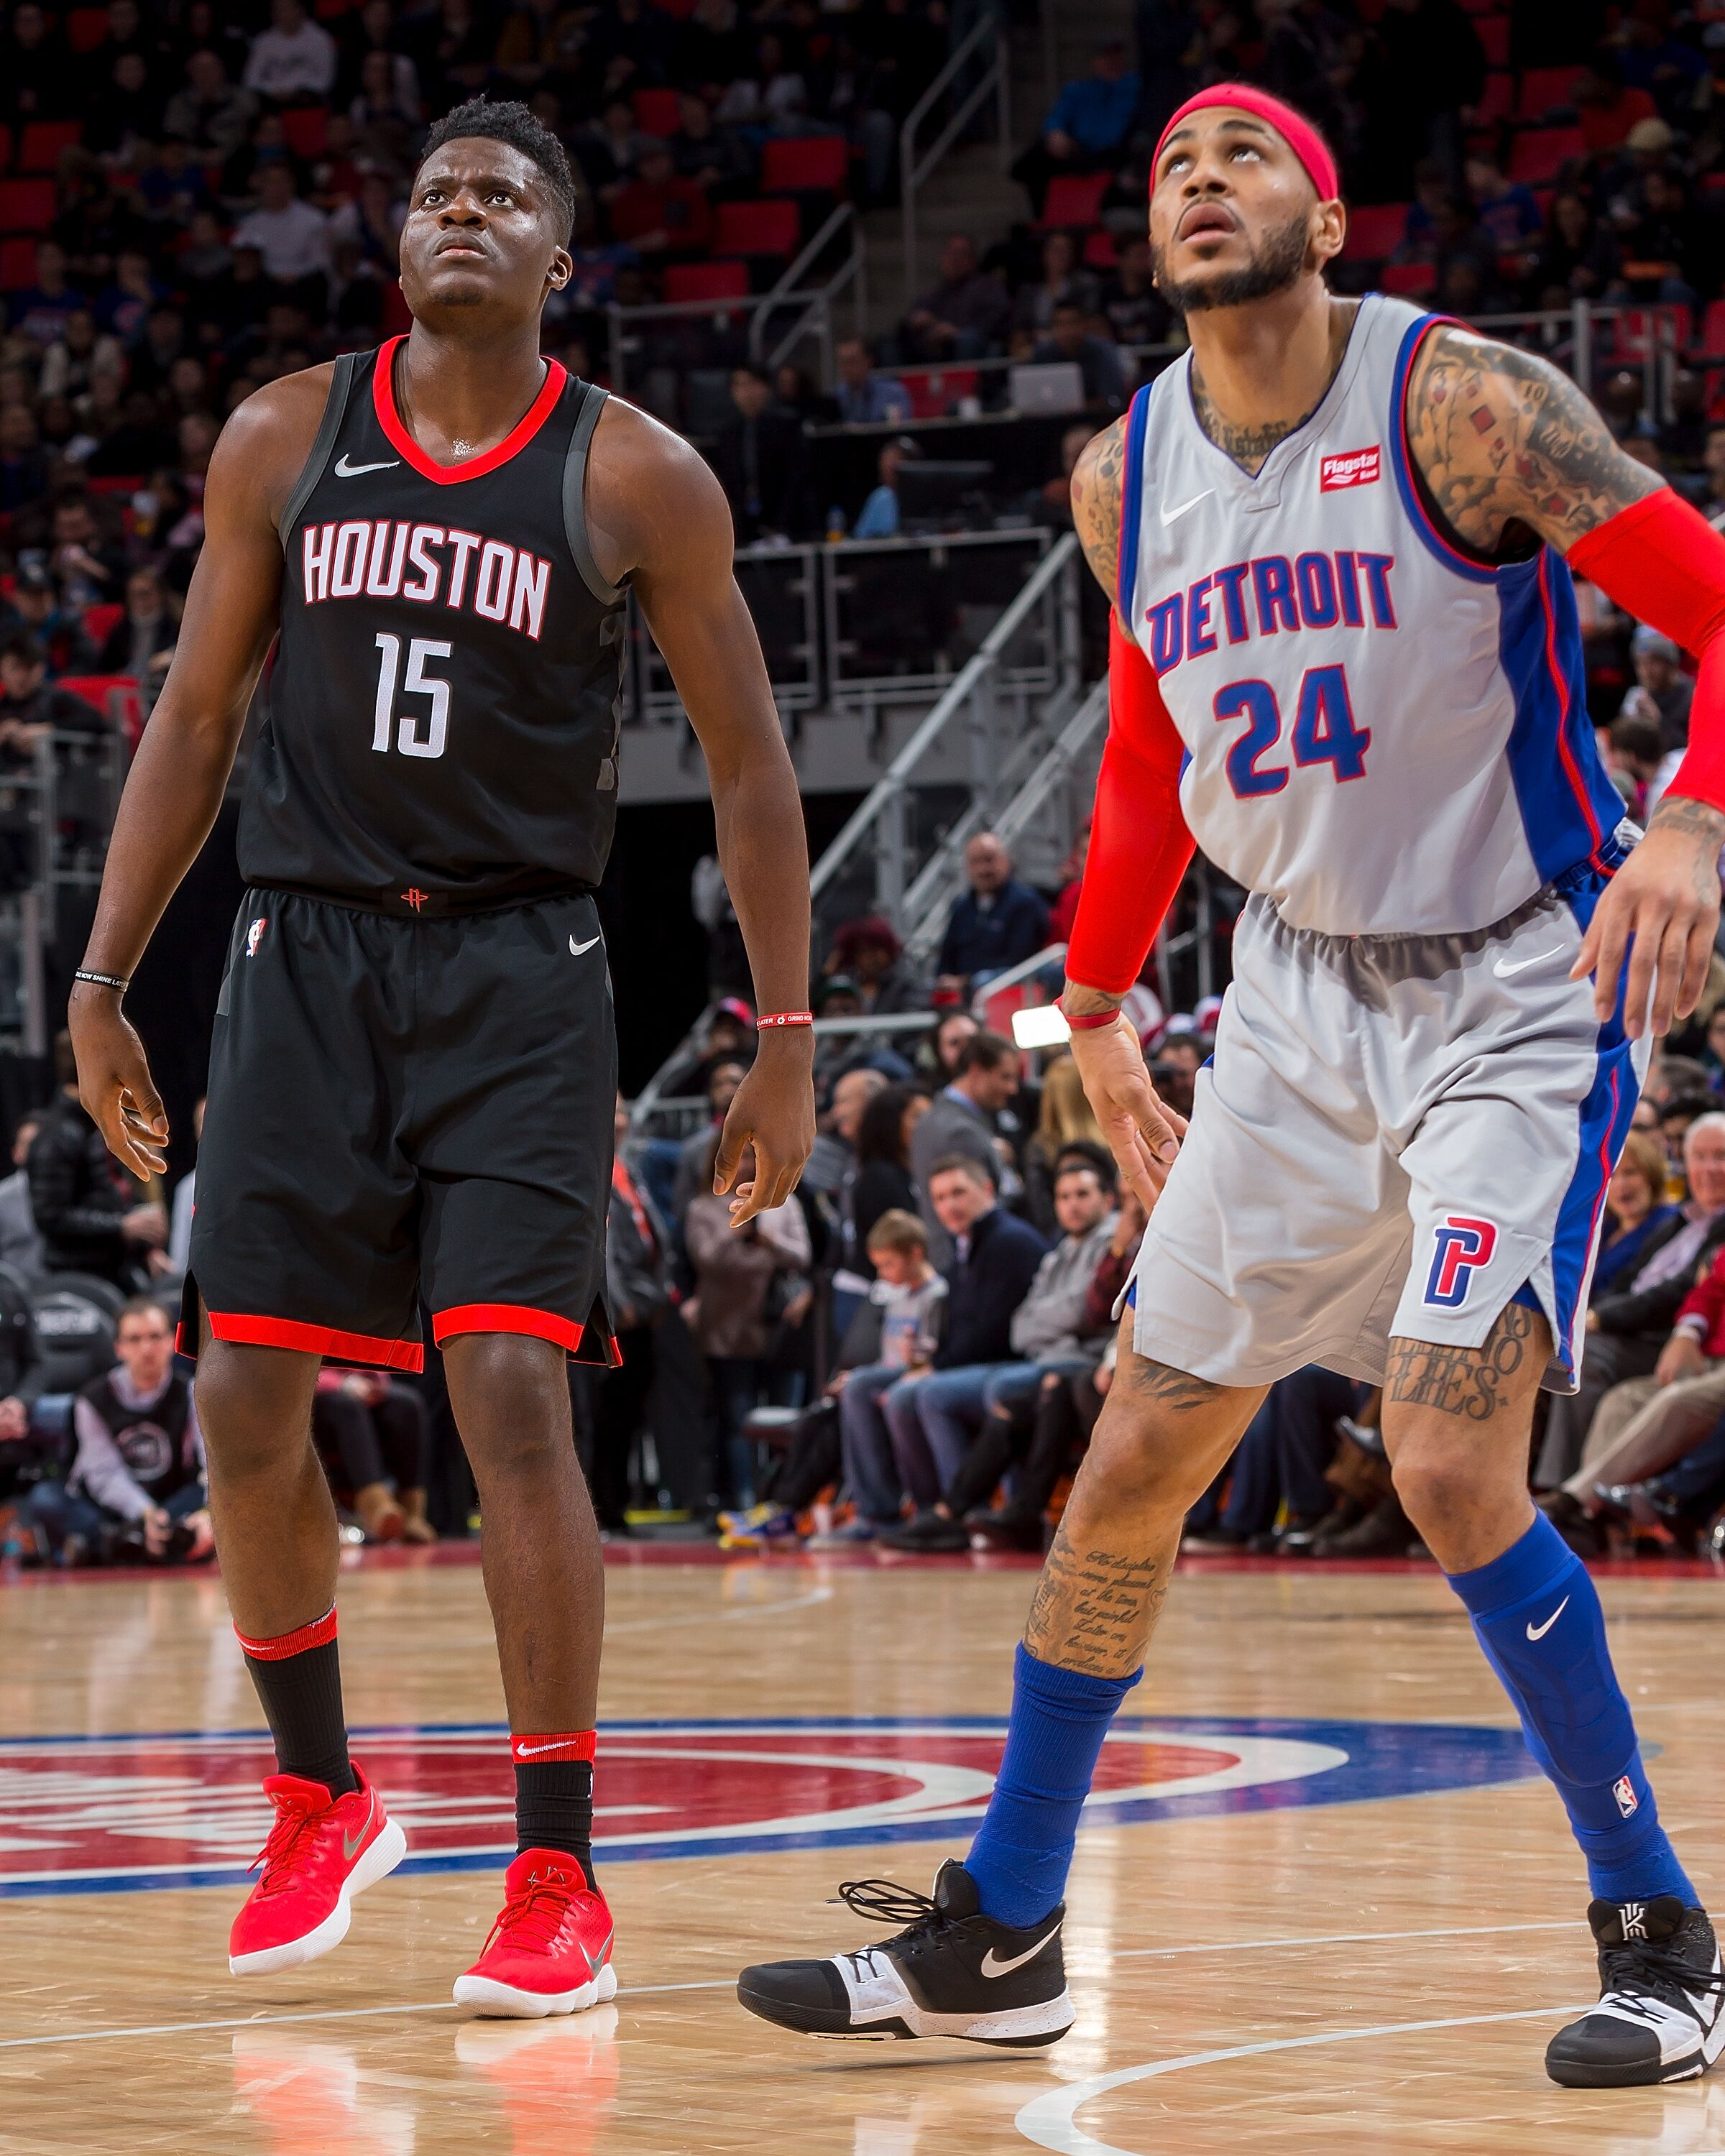 Rockets All Time Roster: Detroit Pistons Head To NBA Leaders, Houston Rockets